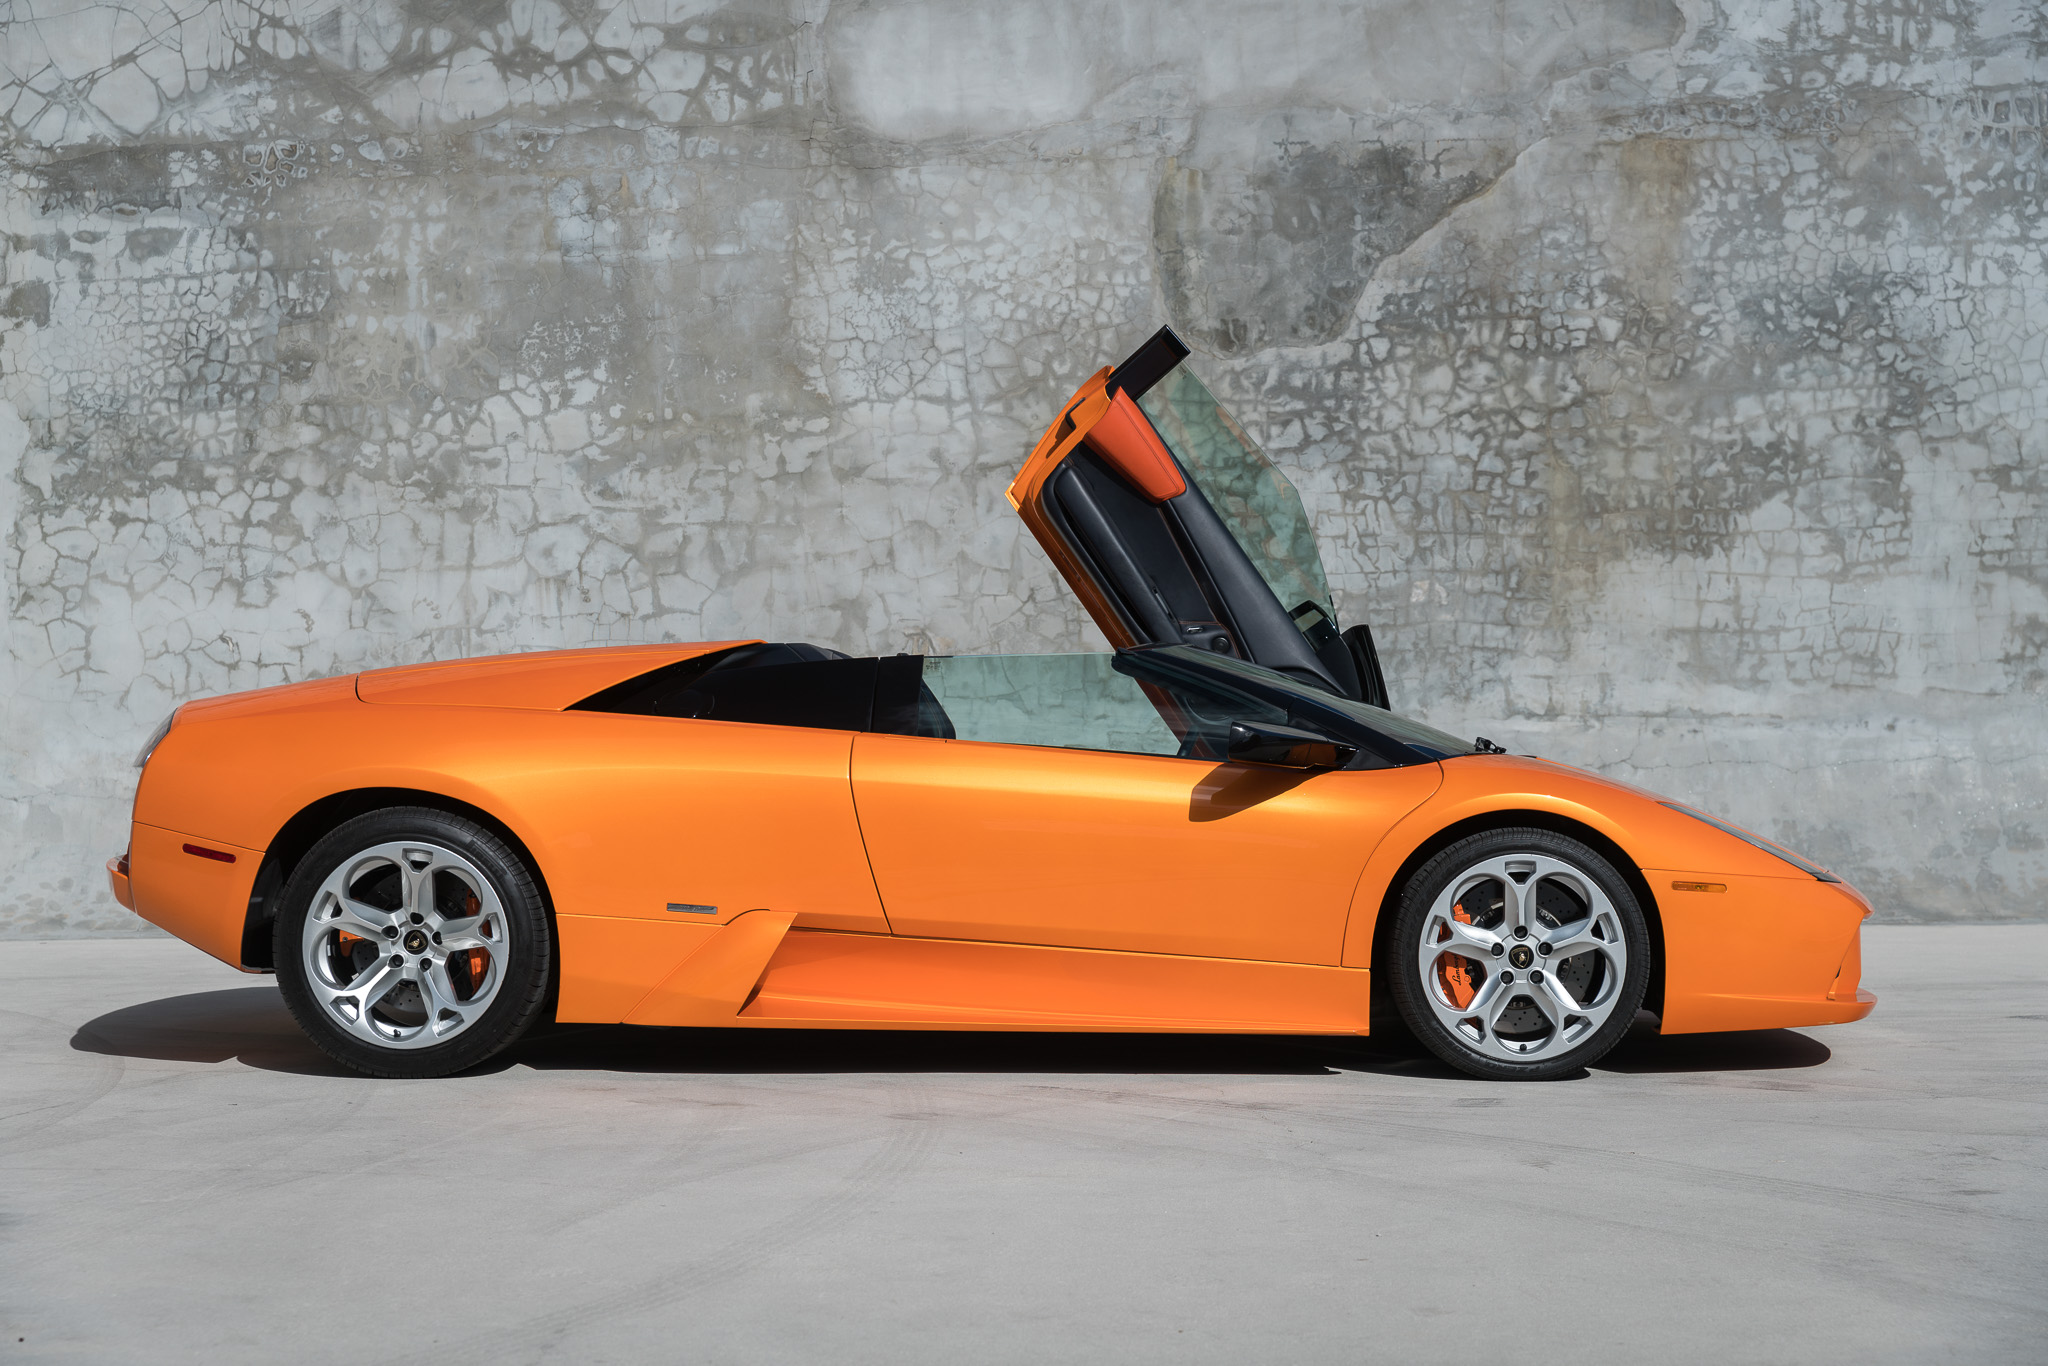 782 Mile Murcielago Roadster For Sale Curated Vintage Classic